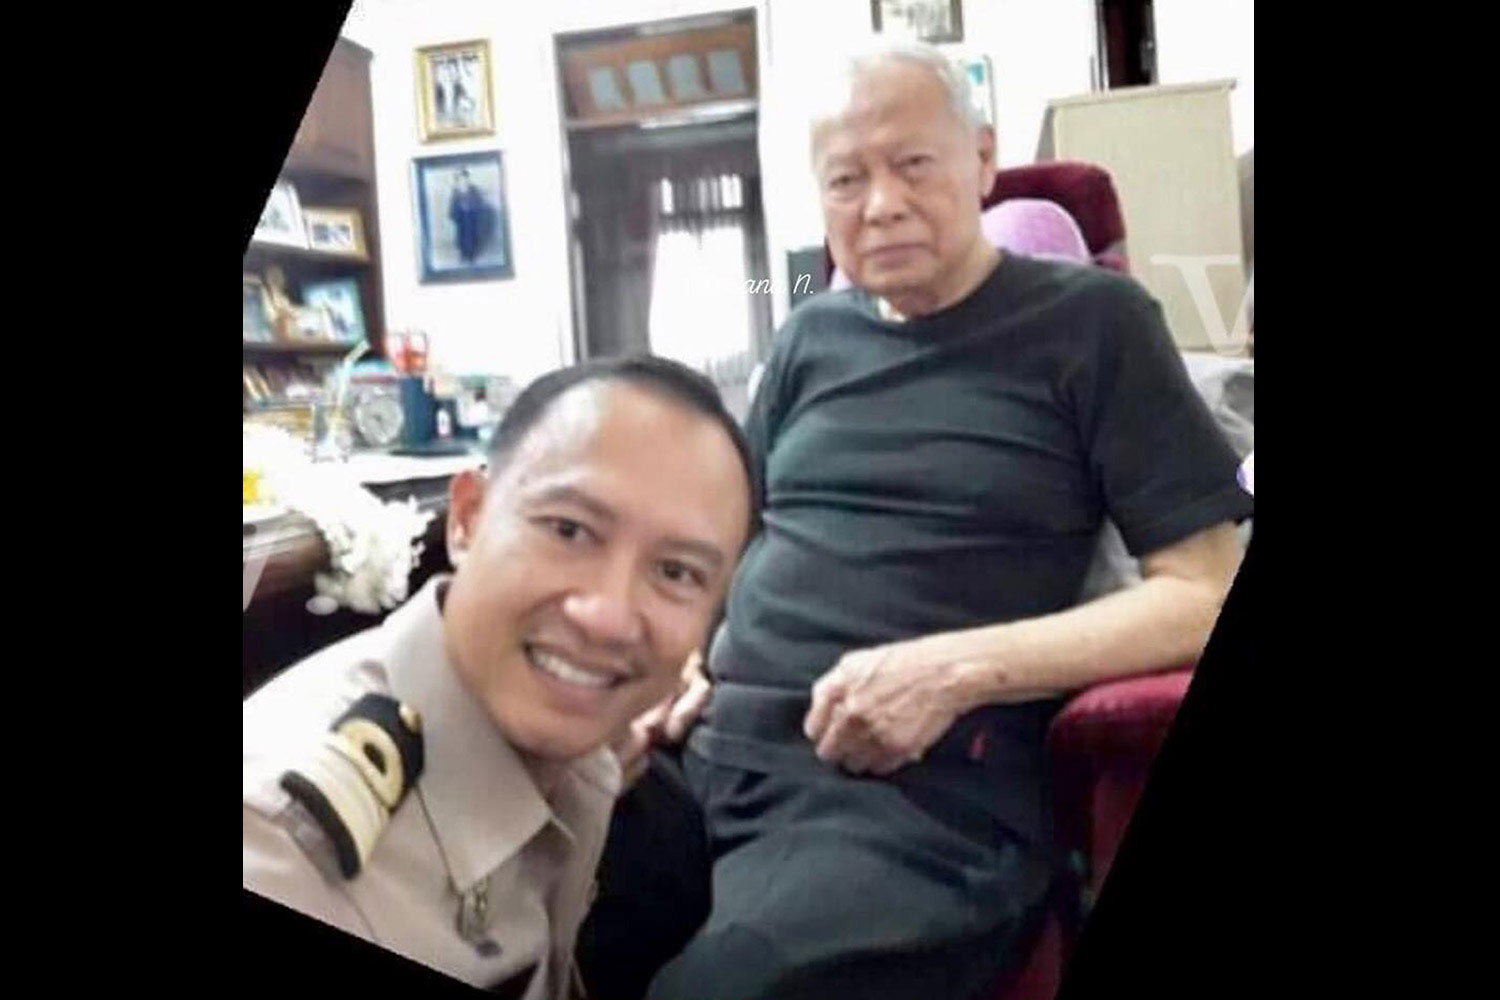 Cdr Surithichai Khlai-udom (left) poses with Privy Council president and statesman Prem Tinsulanonda in a photo he later used as his Facebook profile picture. (Photo supplied)